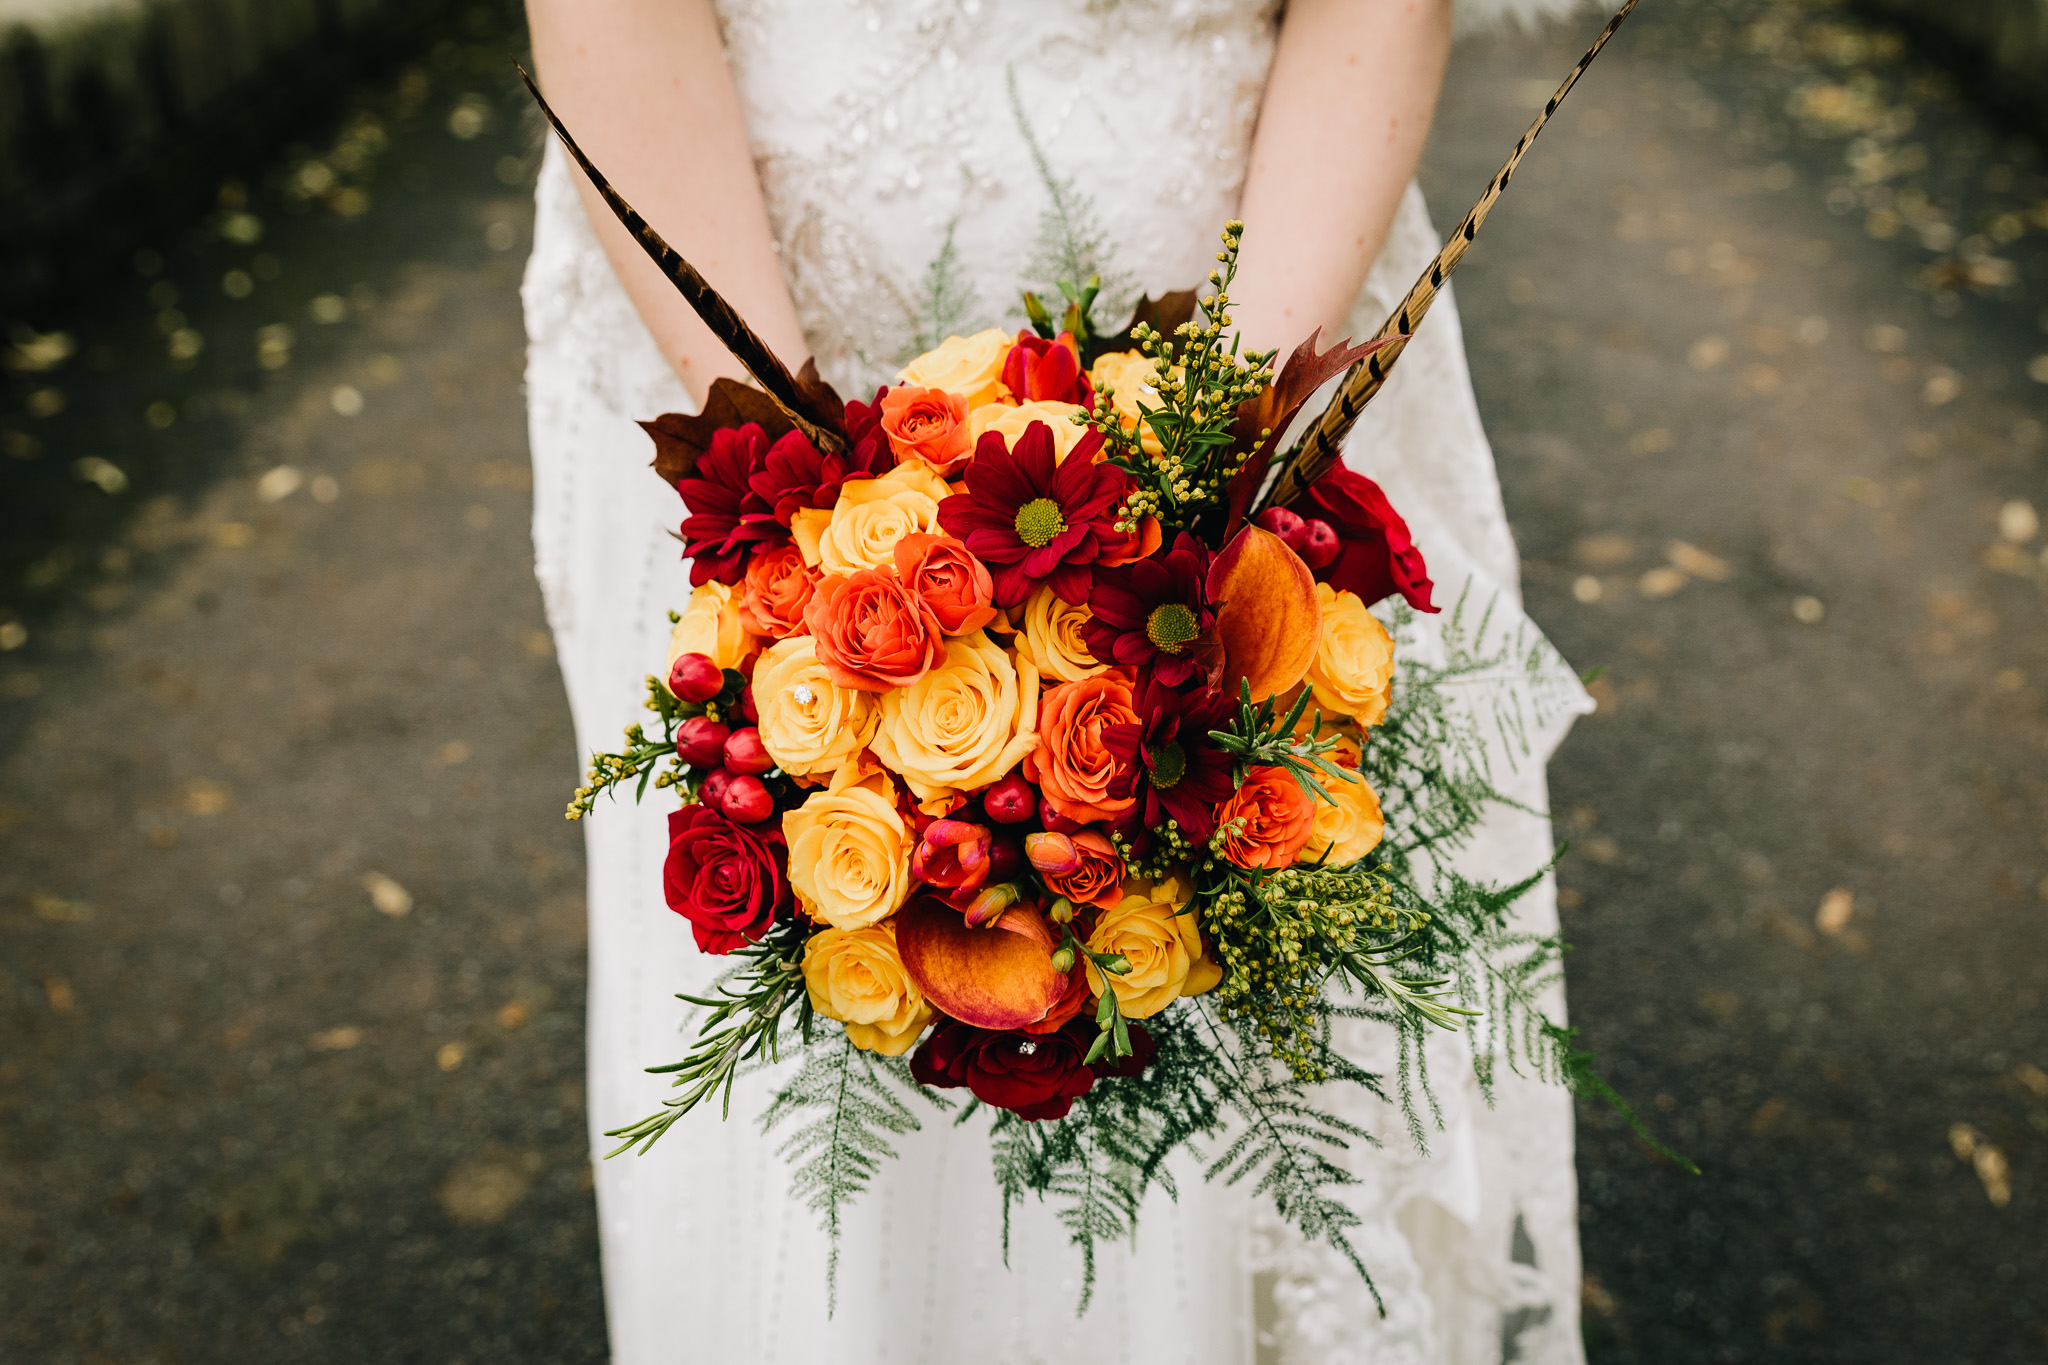 WEDDING FLOWERS BRIDAL BOUQUET BY MOODY BLOOMS FLORIST